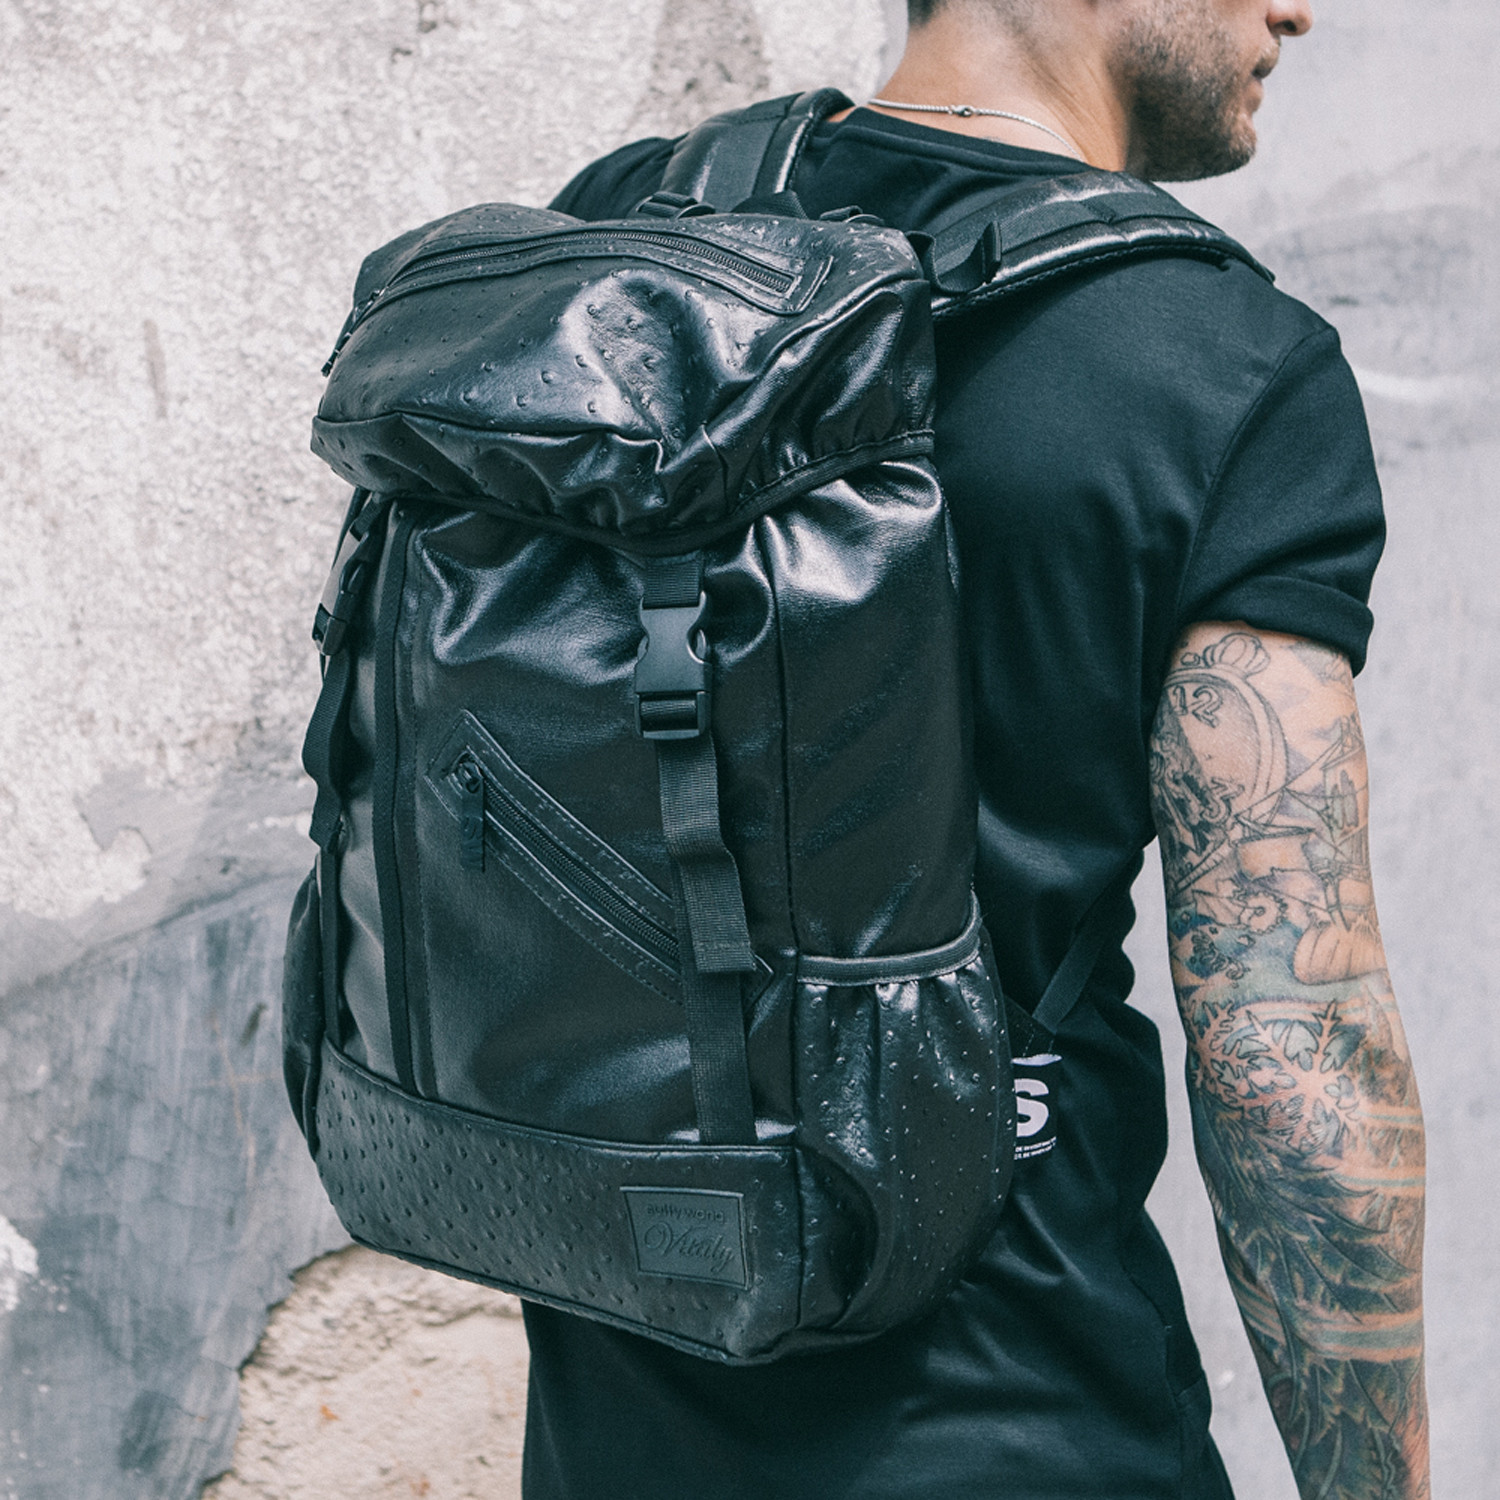 All Black Everything: All Black Everything Backpack // SW X Vitaly Limited